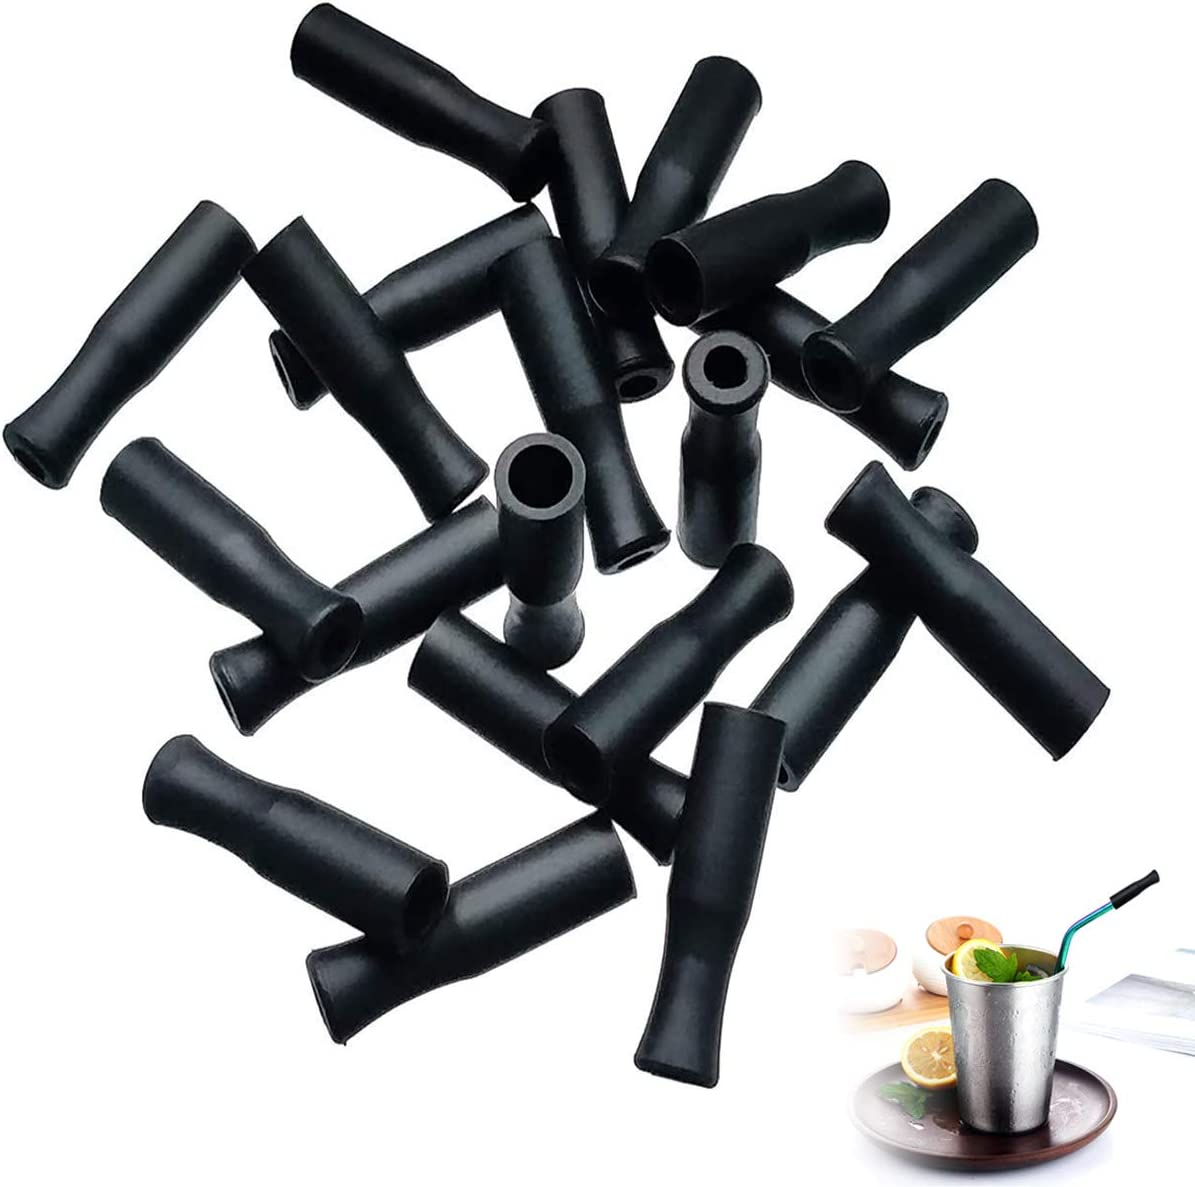 21Pcs Reusable Silicone Straw Tips, Stainless Straw Tips, Black Food Grade Straws Tips Covers Fit for 6mm Wide Stainless Steel Straws And Glass Straws